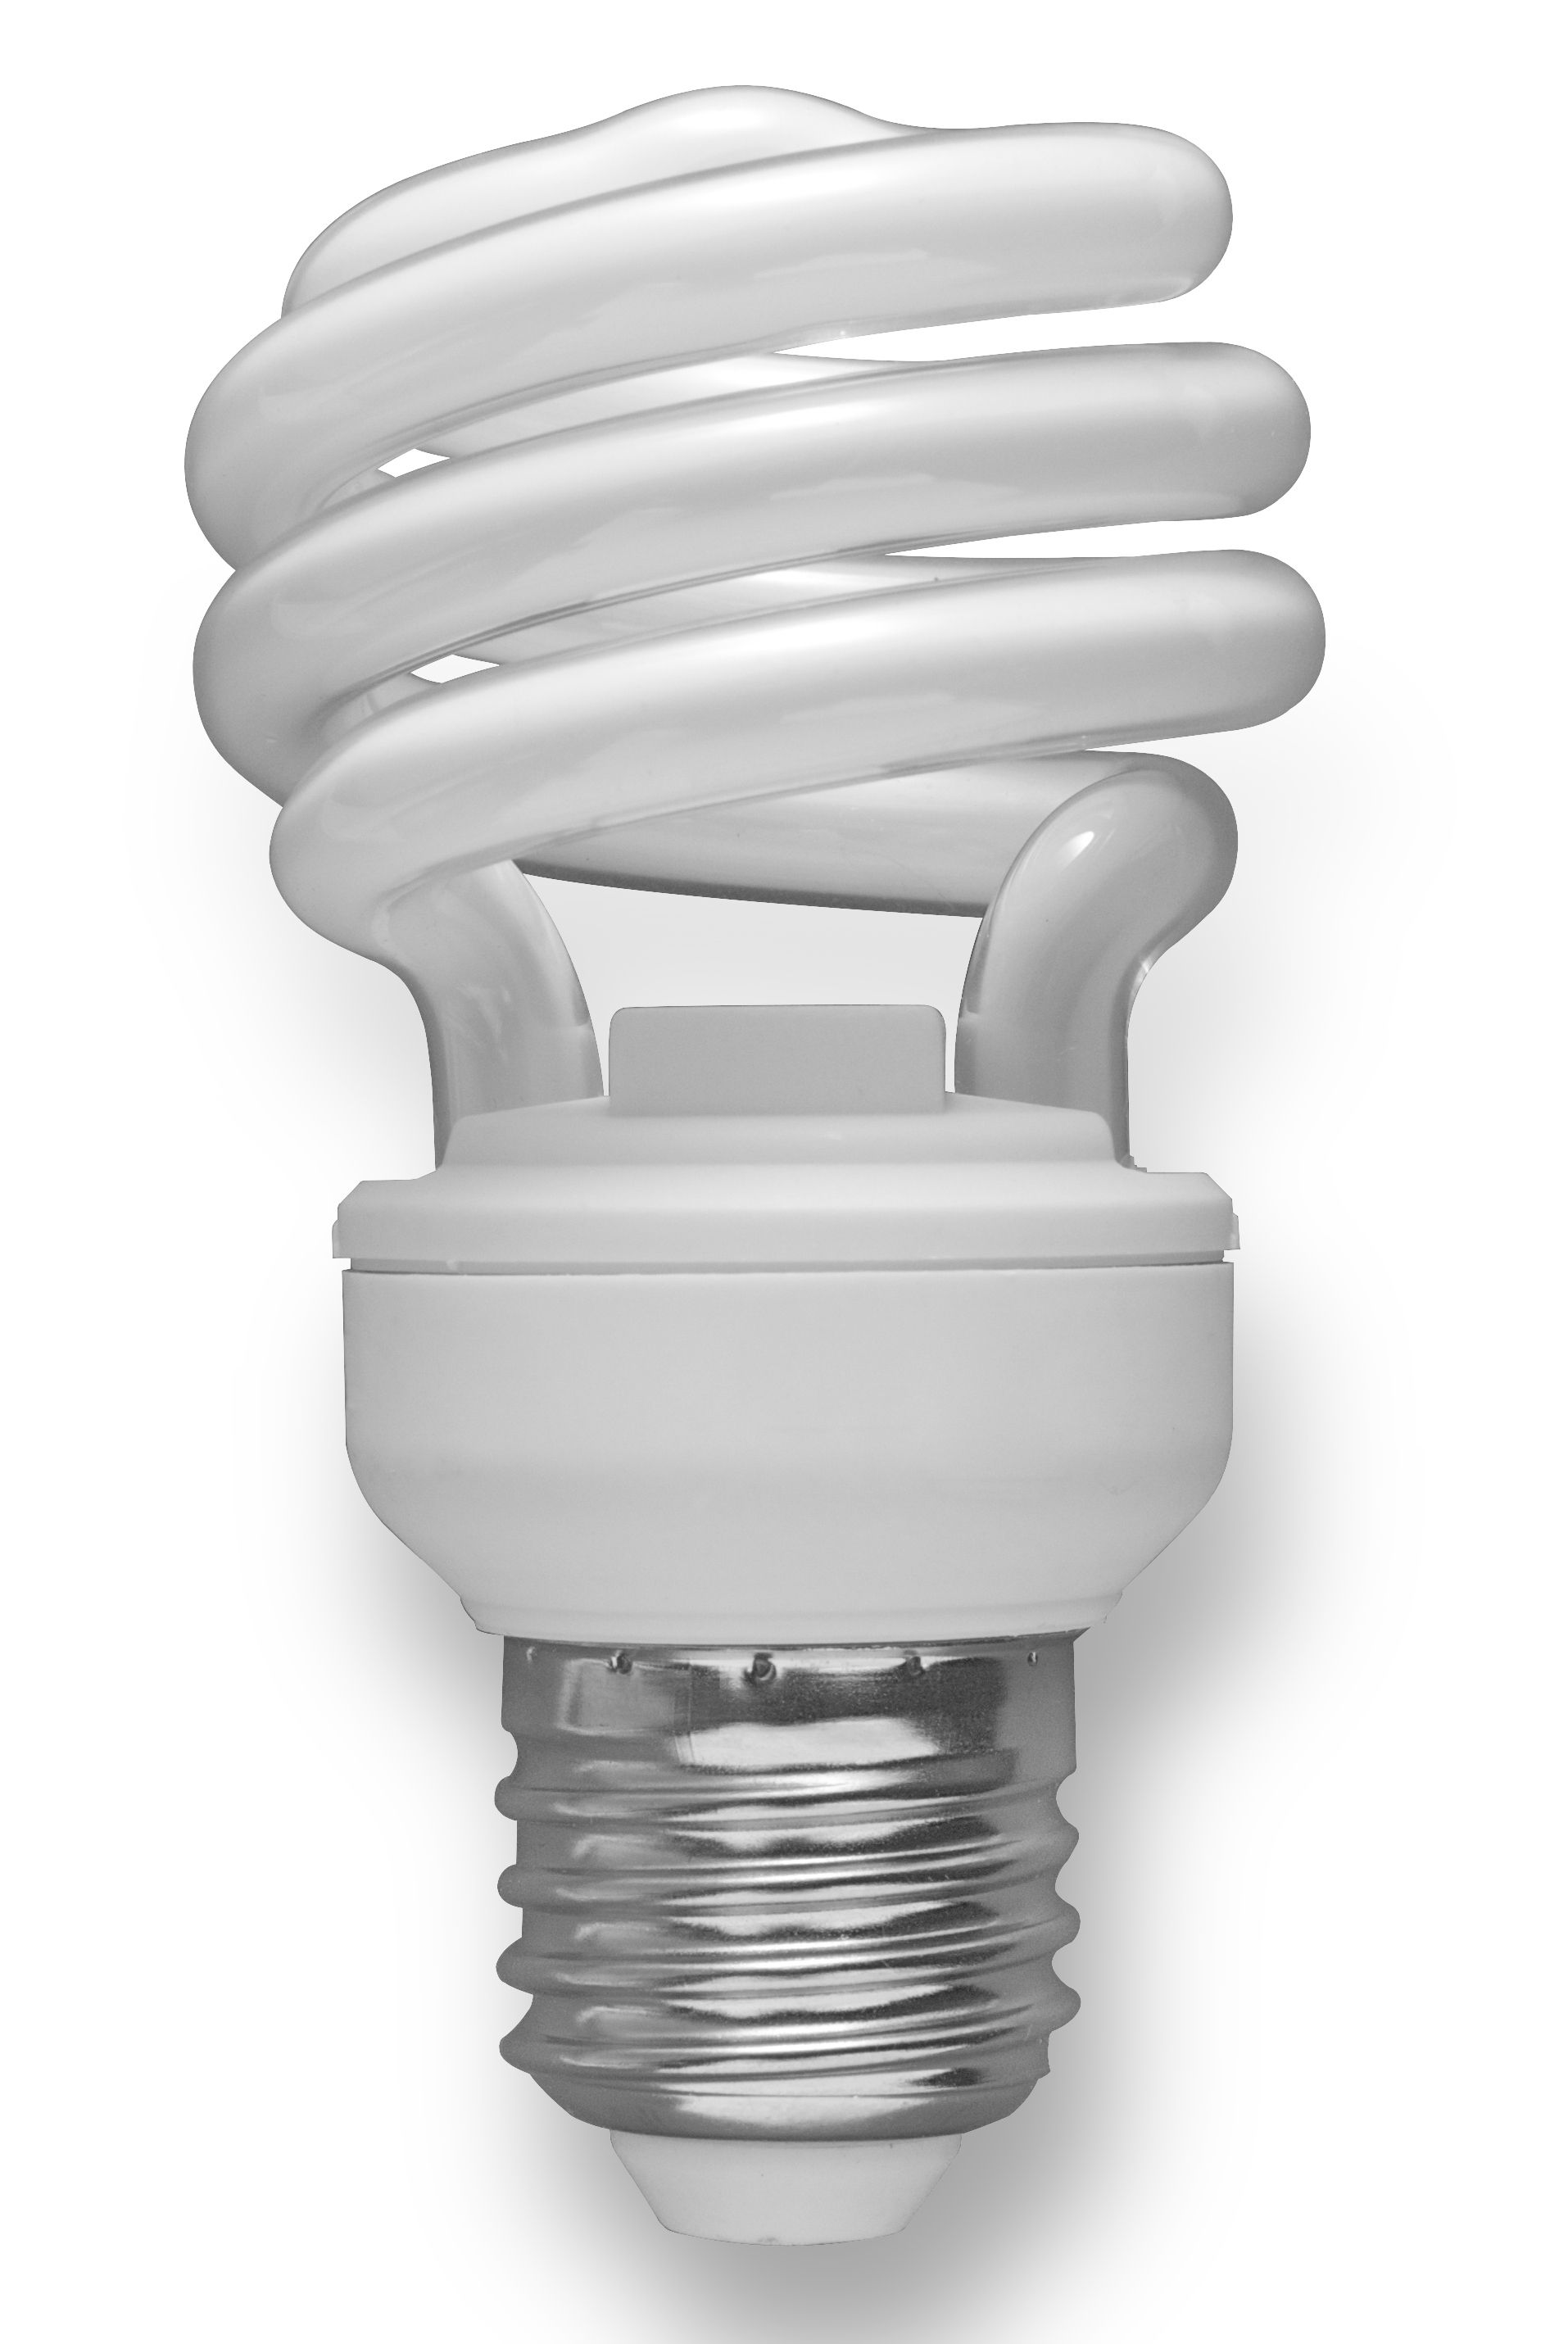 From Incandescent to Compact Fluorescent - a Brief Story ...